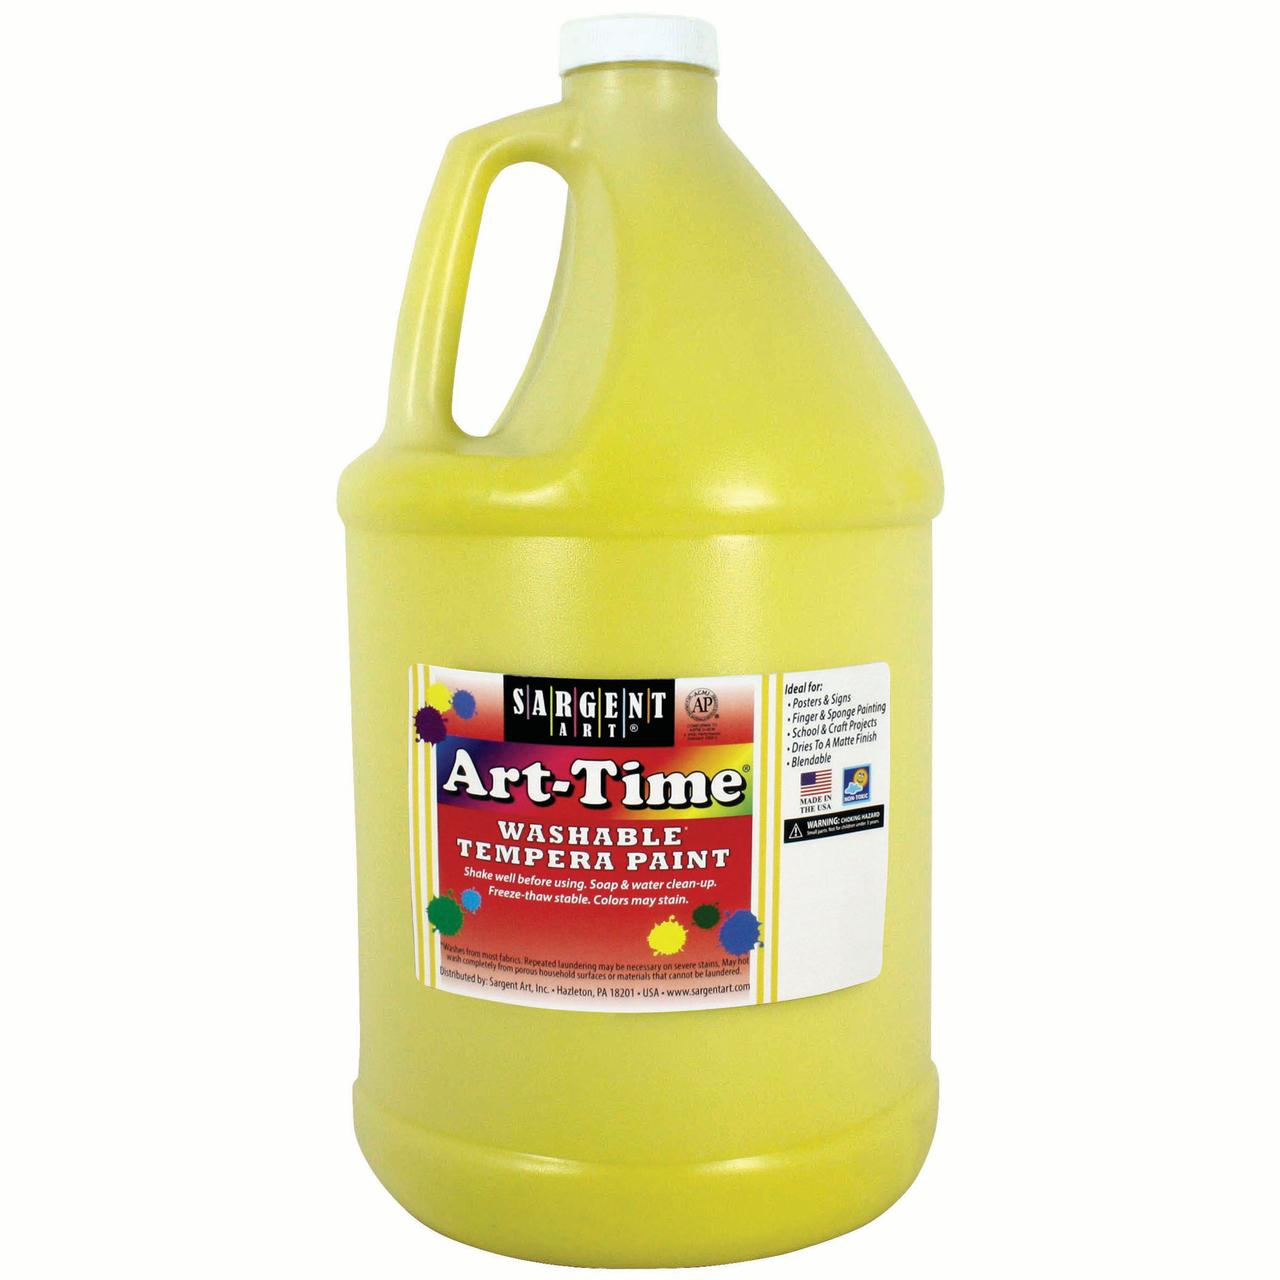 Art-Time® Washable Tempera Paint, Yellow - Gallon